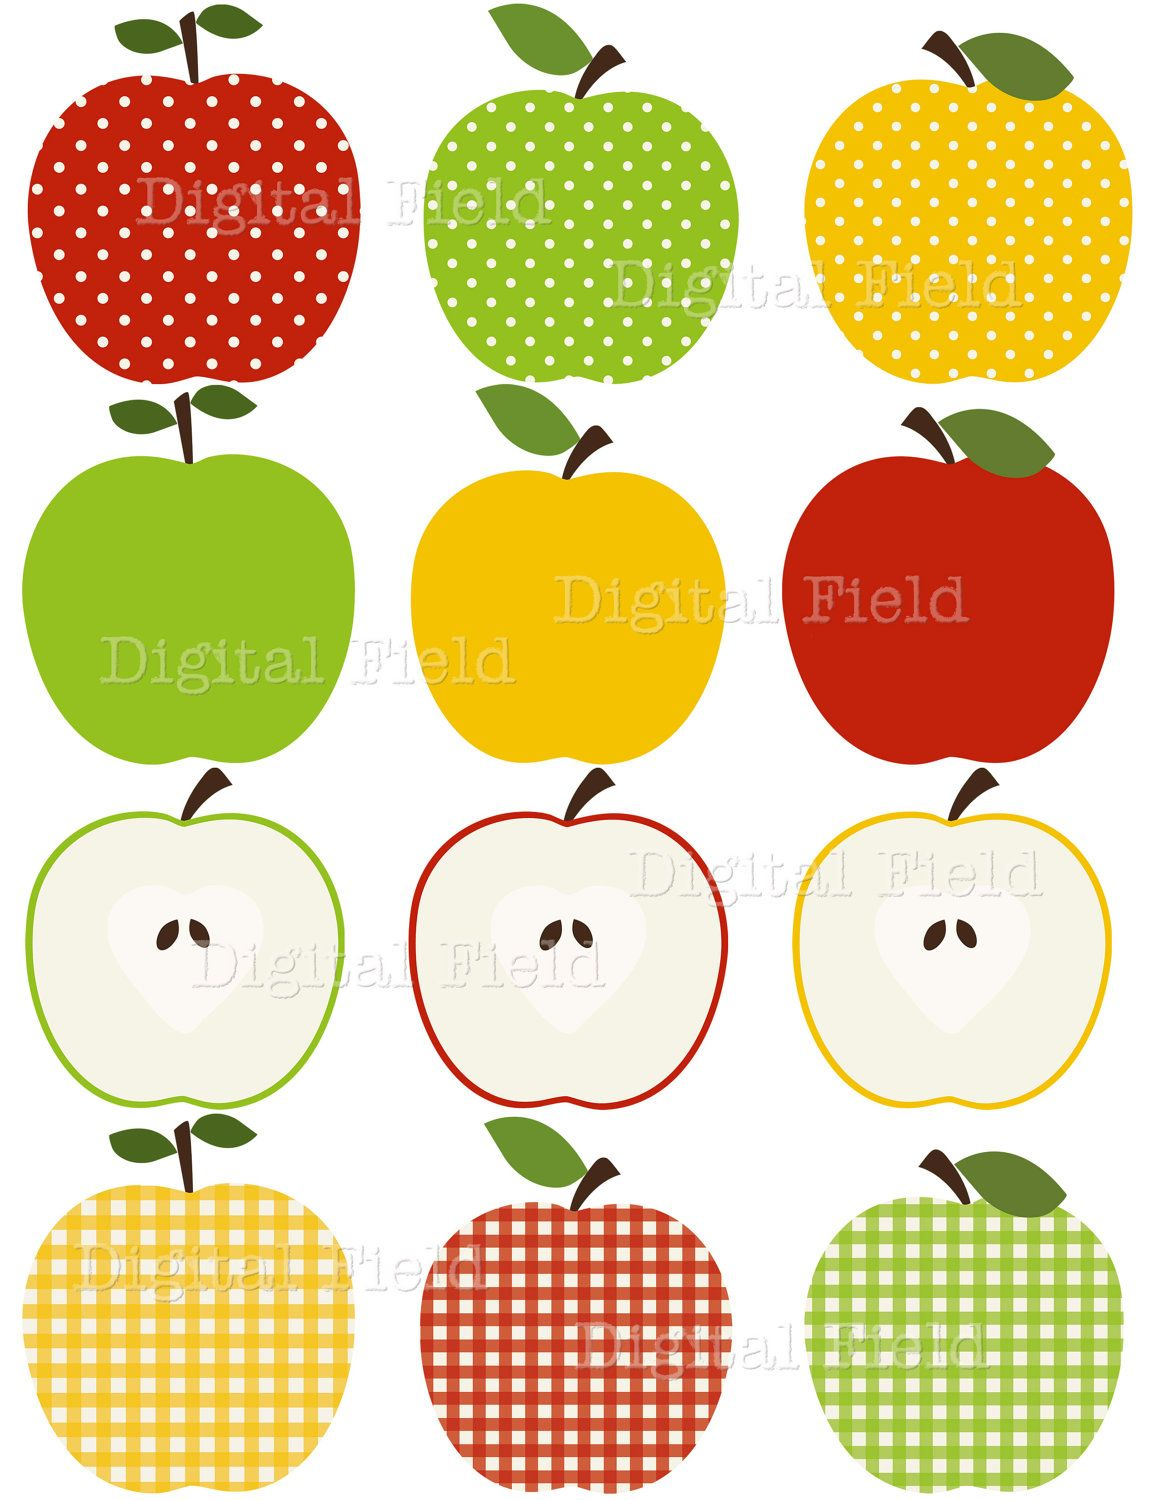 medium resolution of apple clip art set red green and yellow patterned digital clipart personal and small commercial use 2 50 via etsy